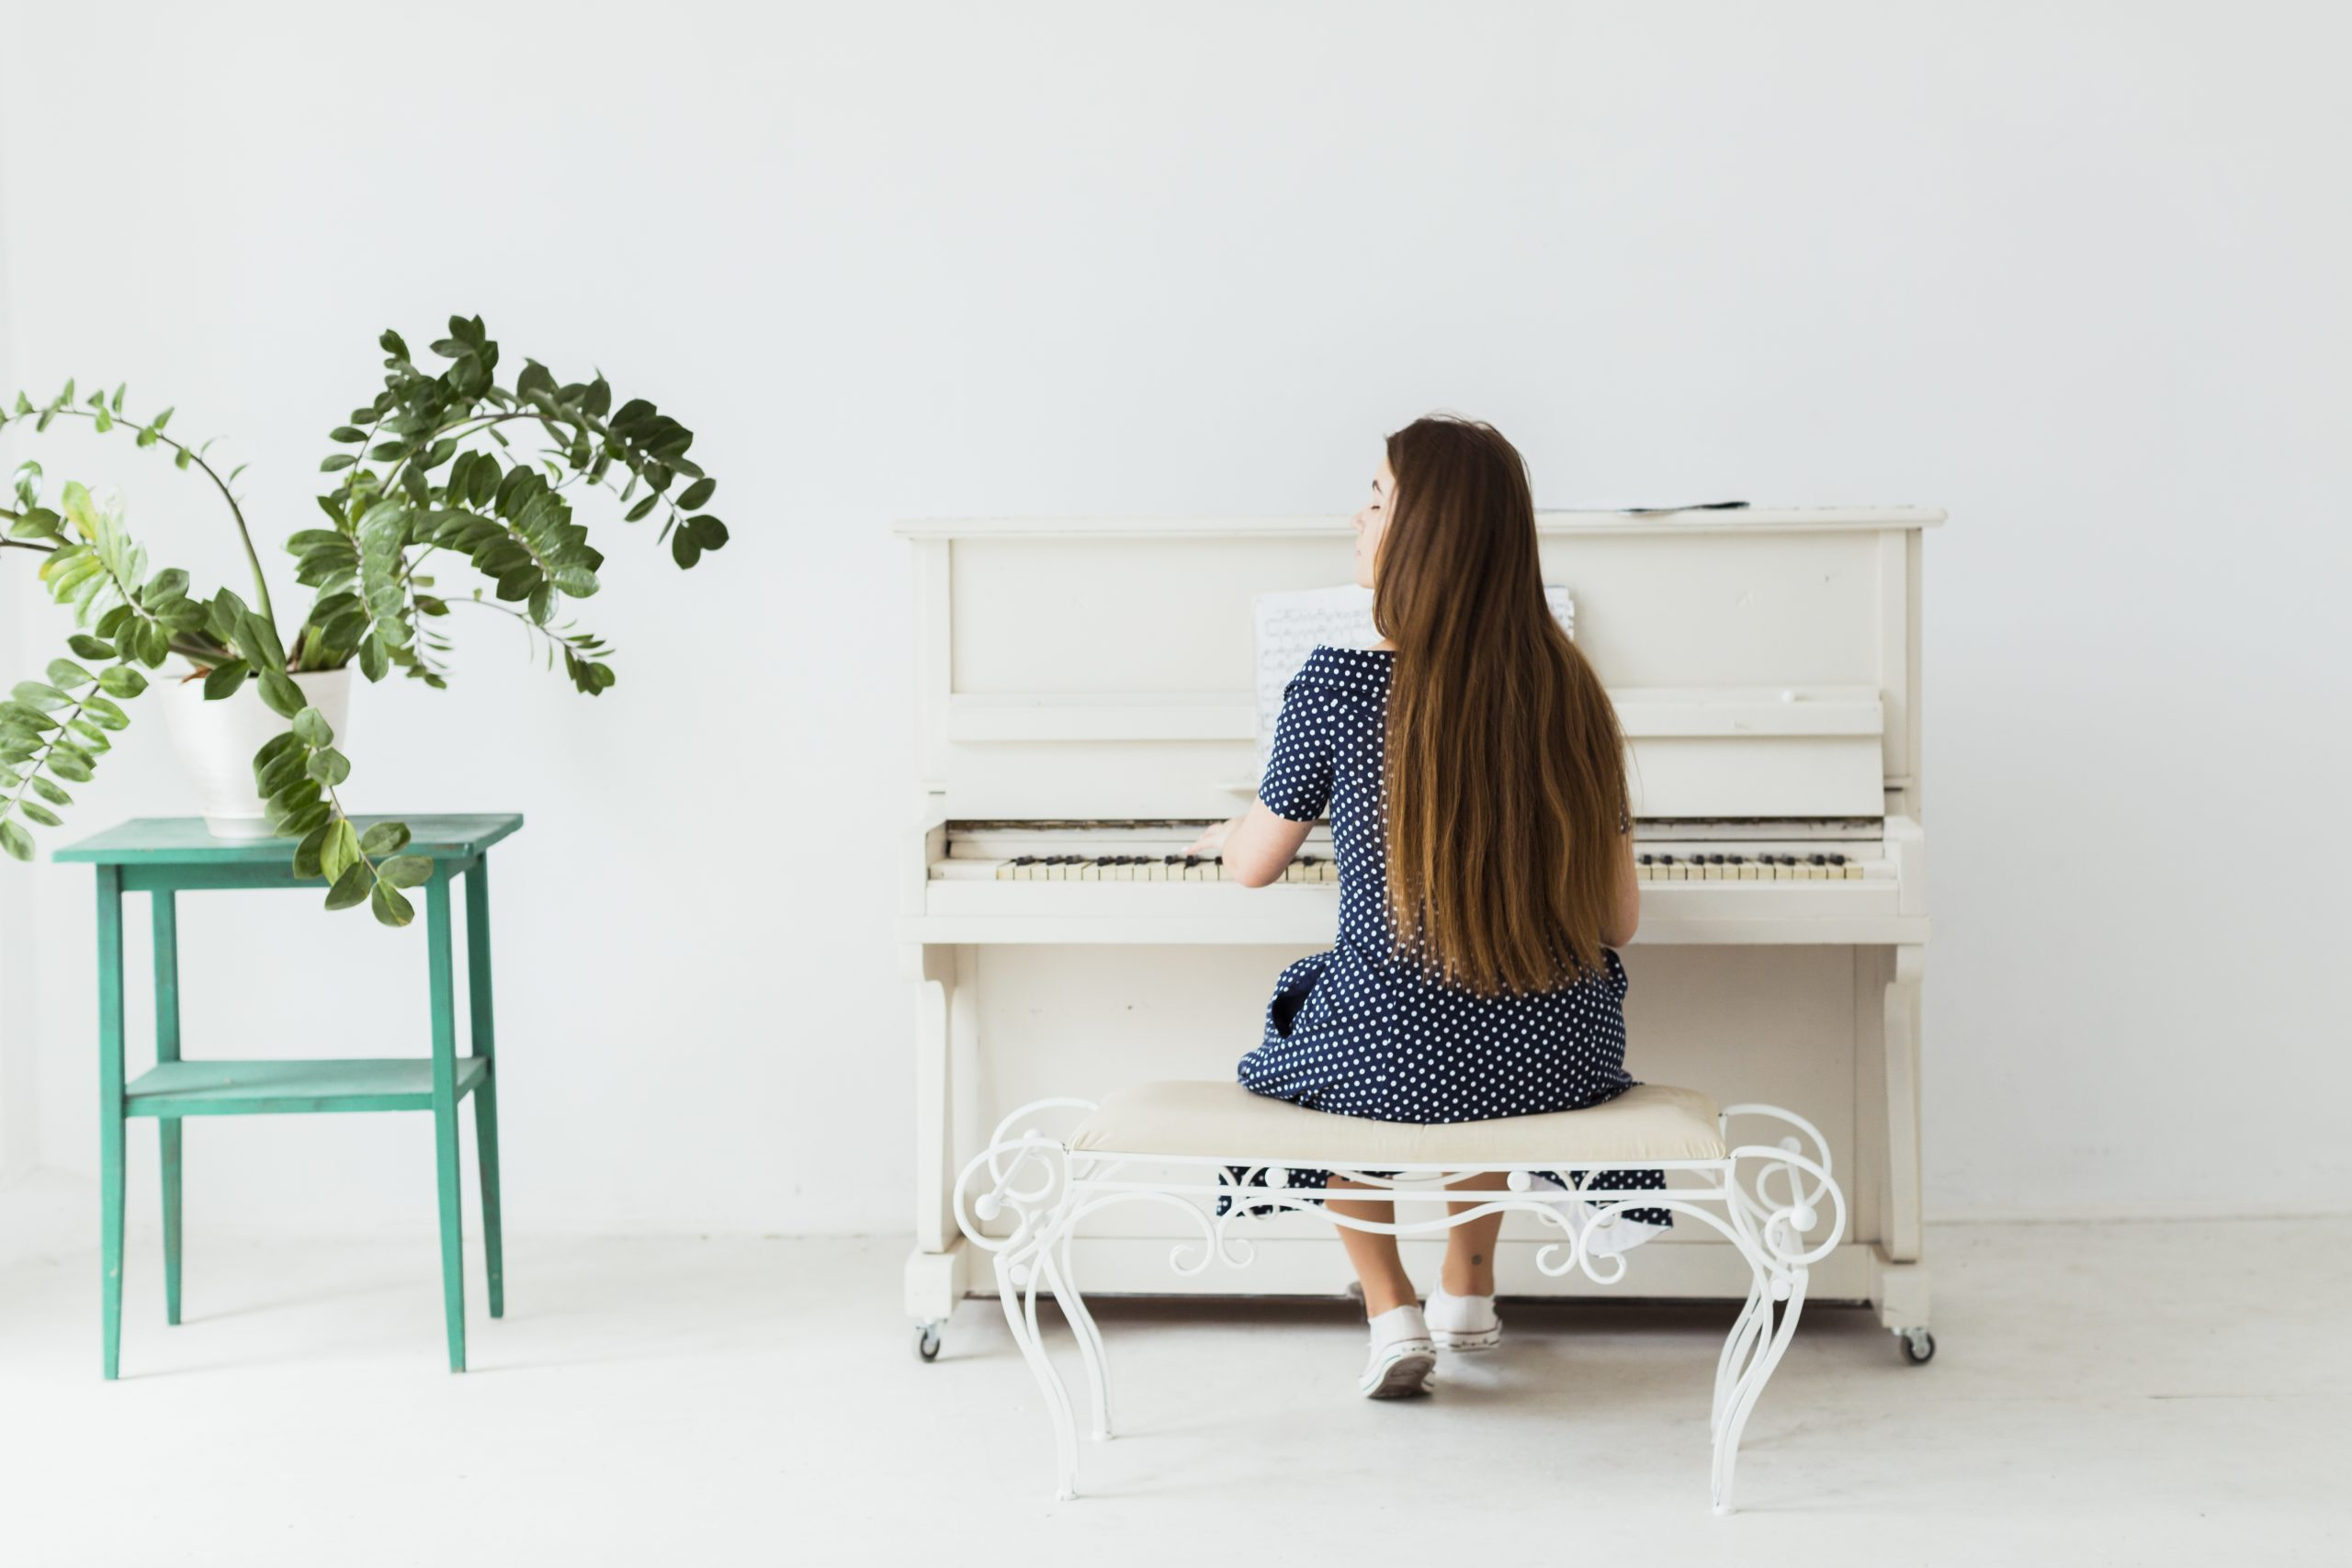 Hire Movers When Moving a Piano